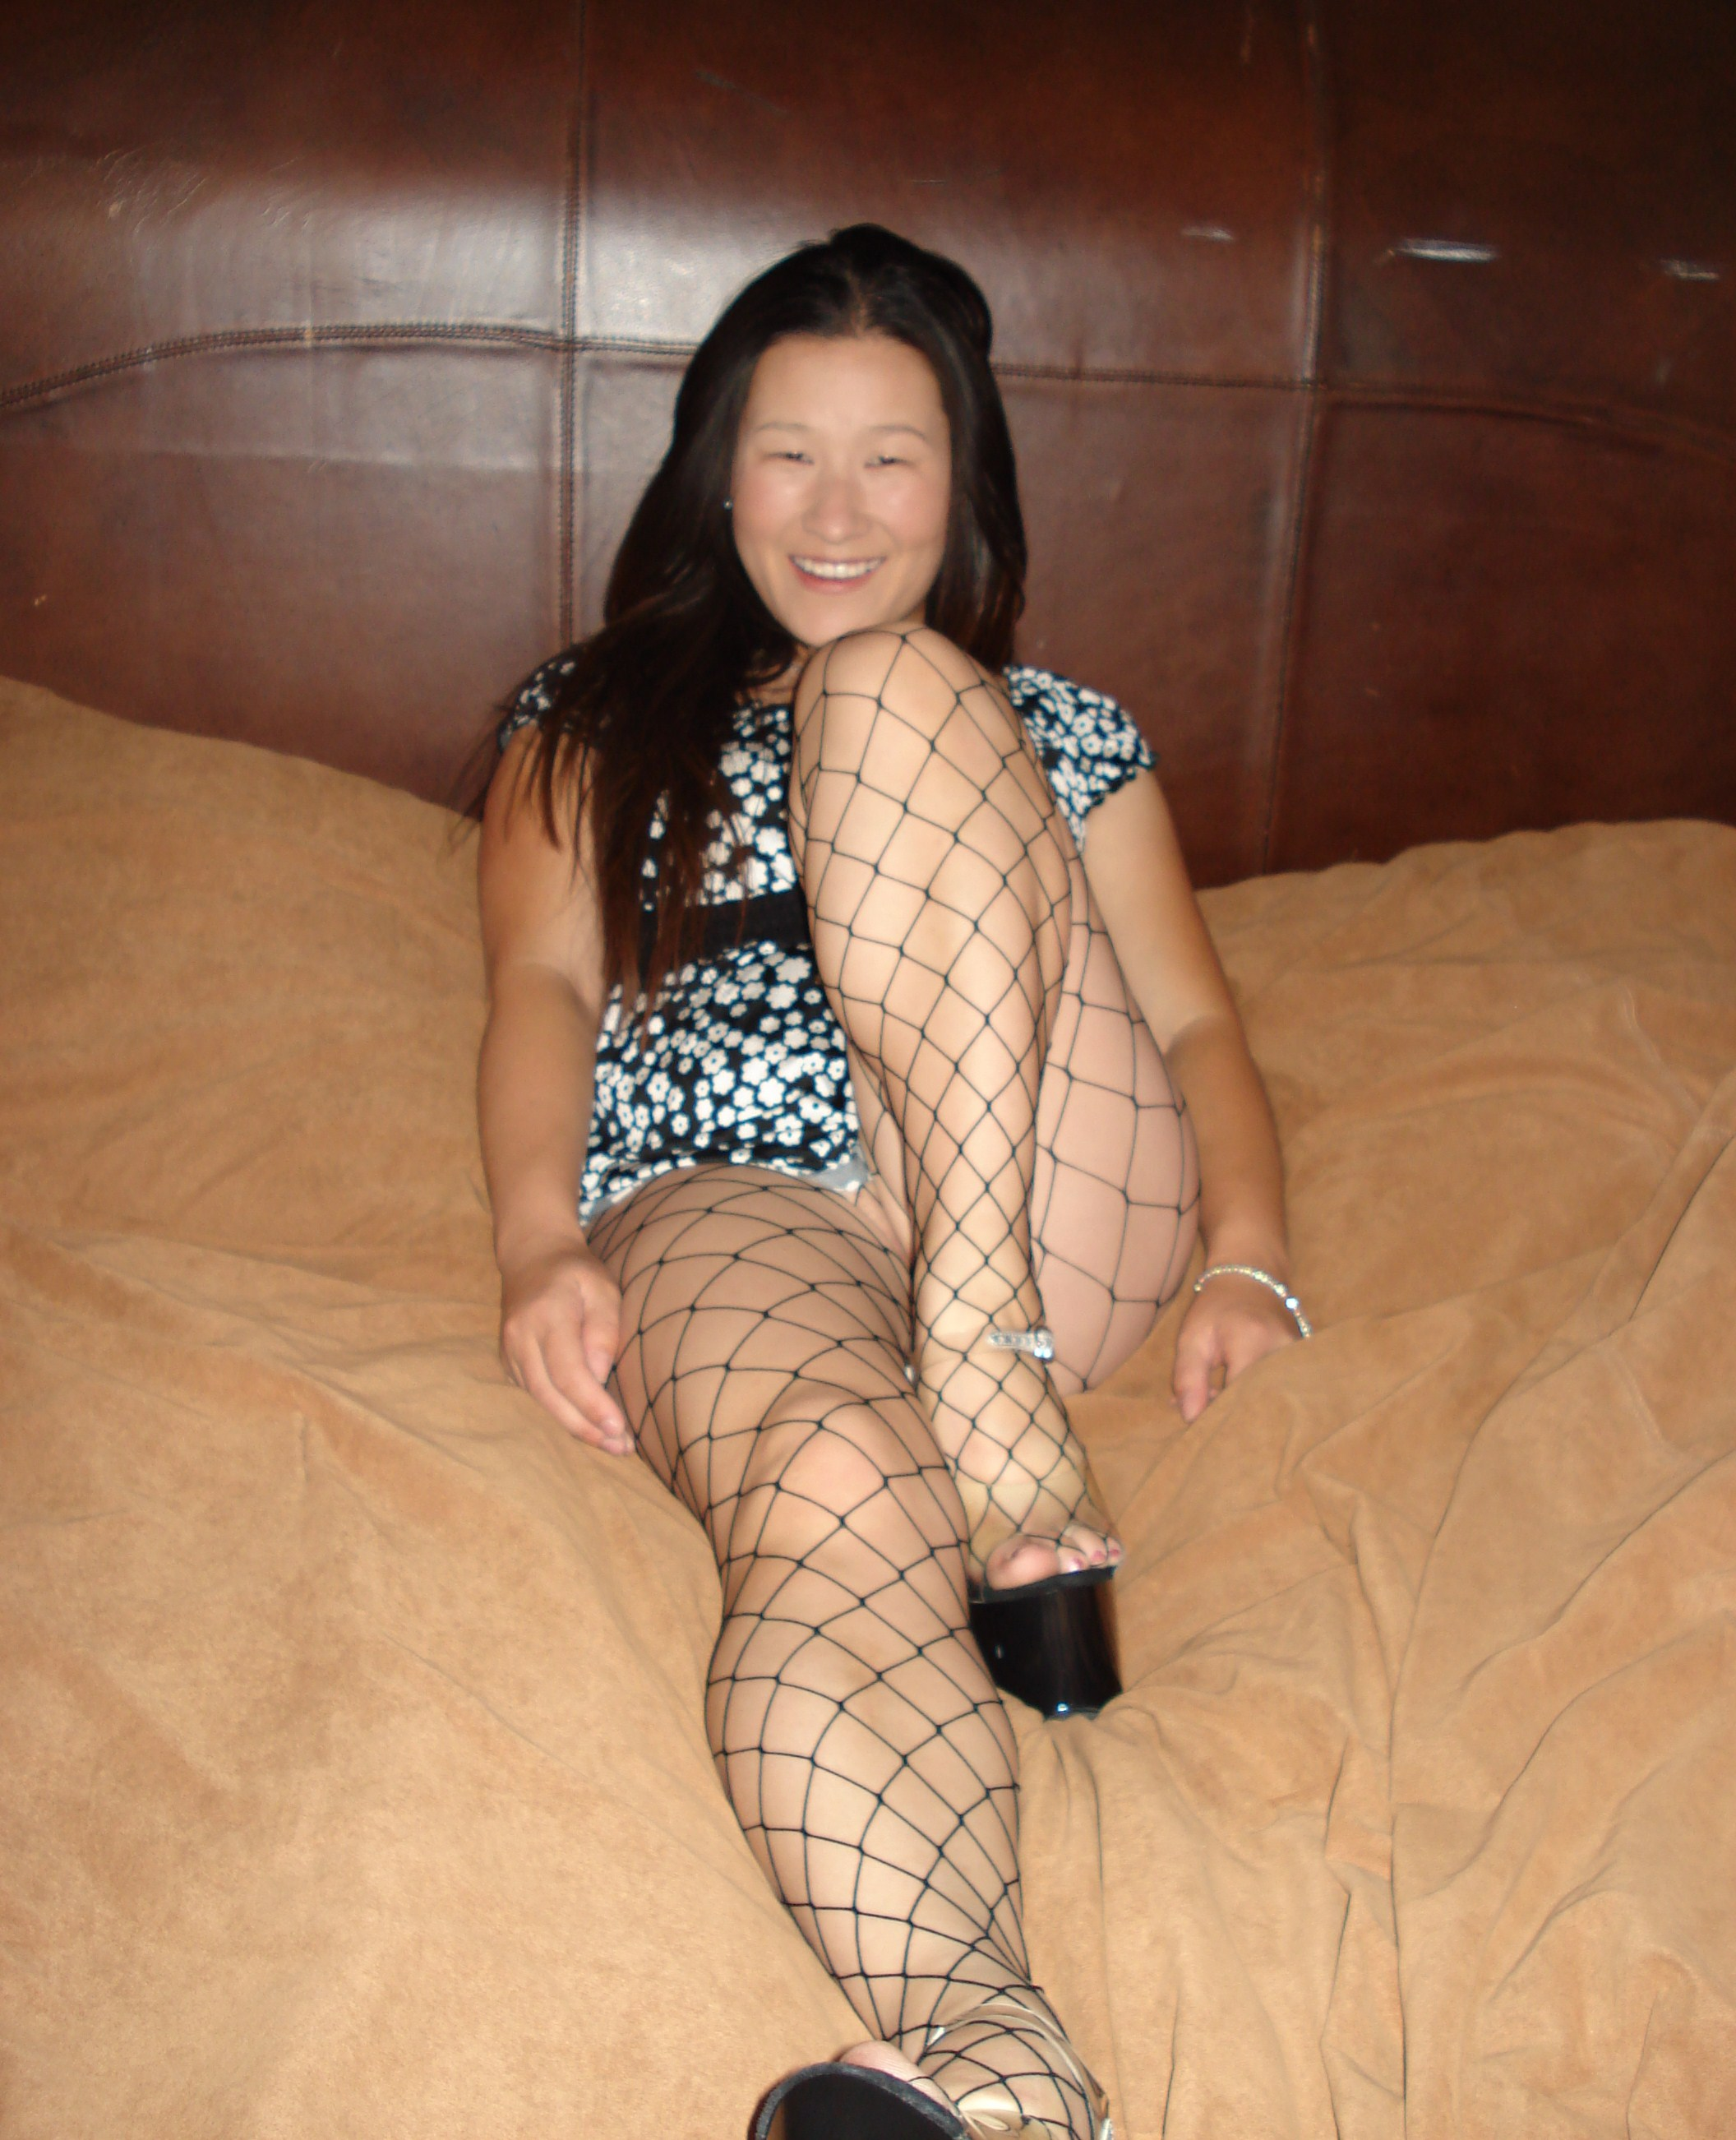 Katelin in fence net pantyhose 3